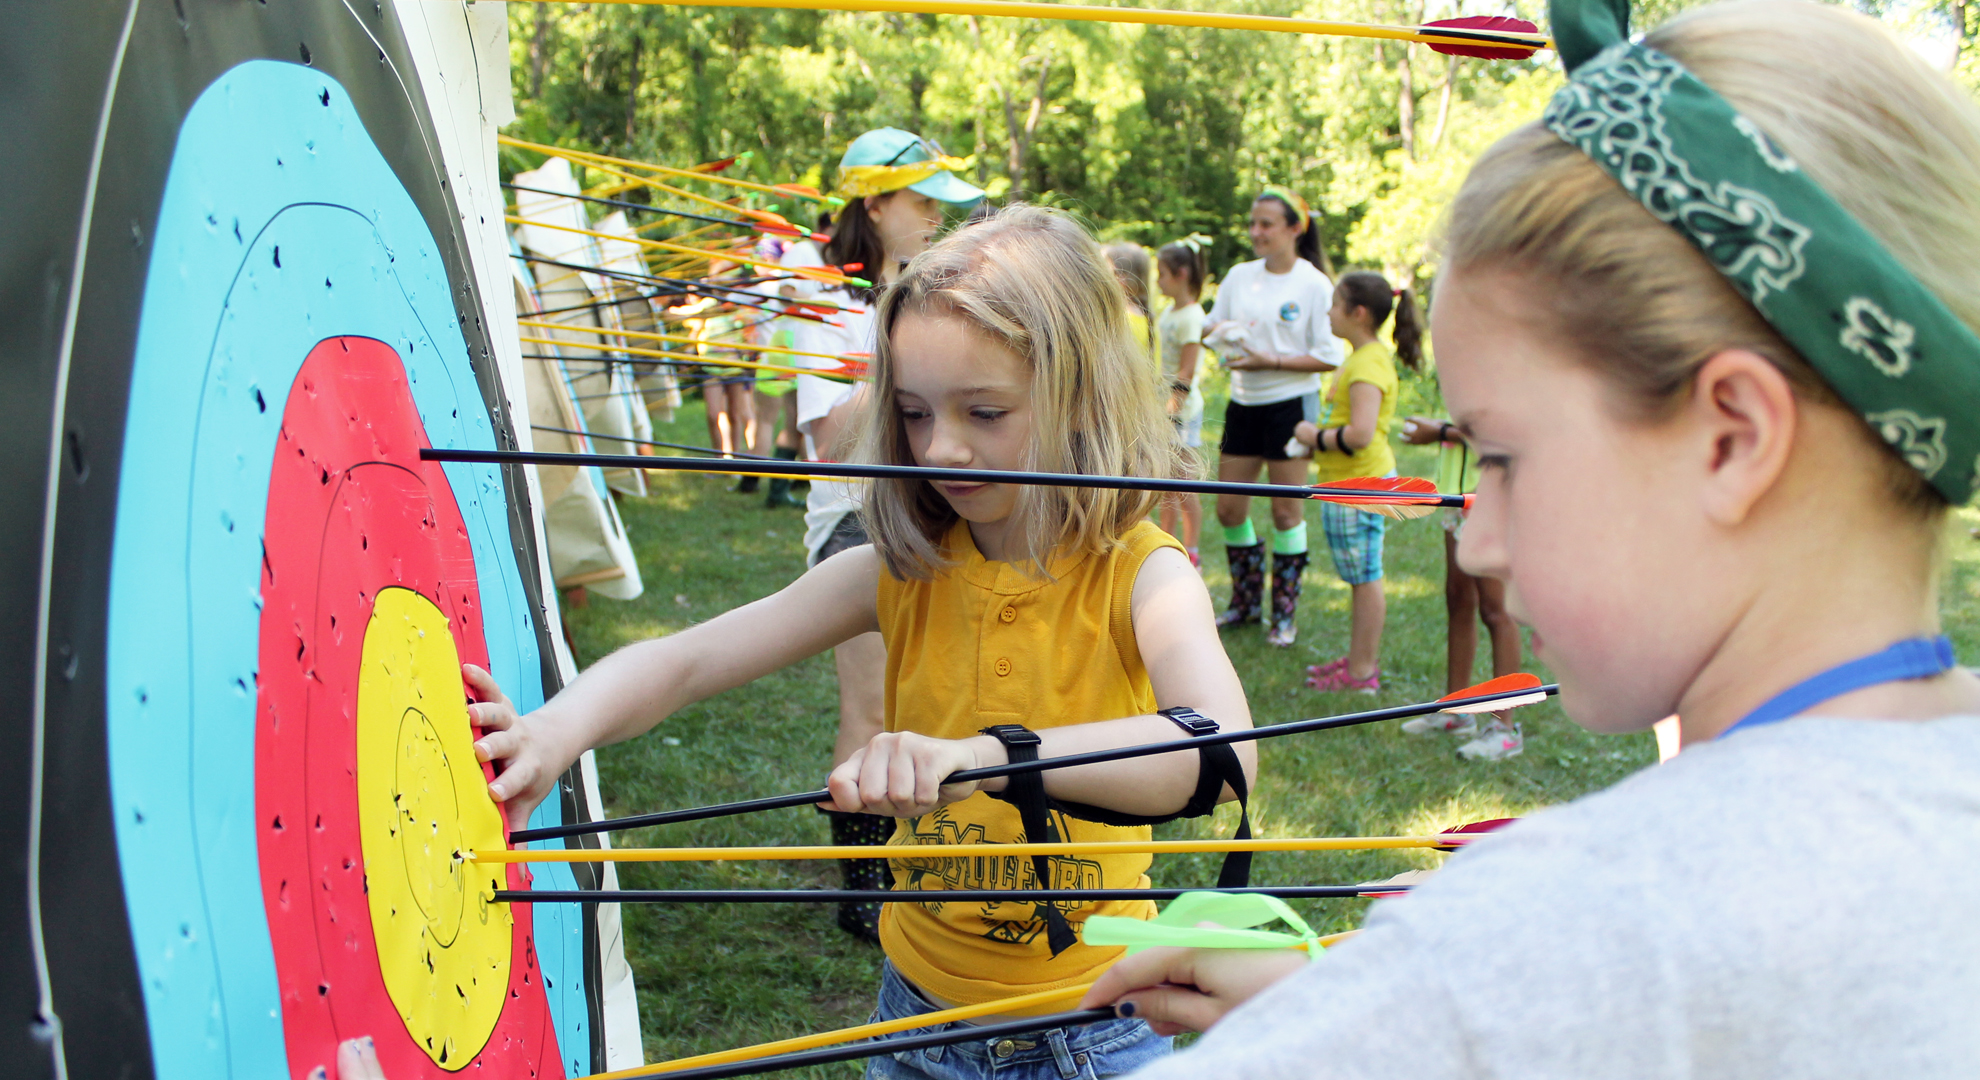 Clatter Valley Day Camp